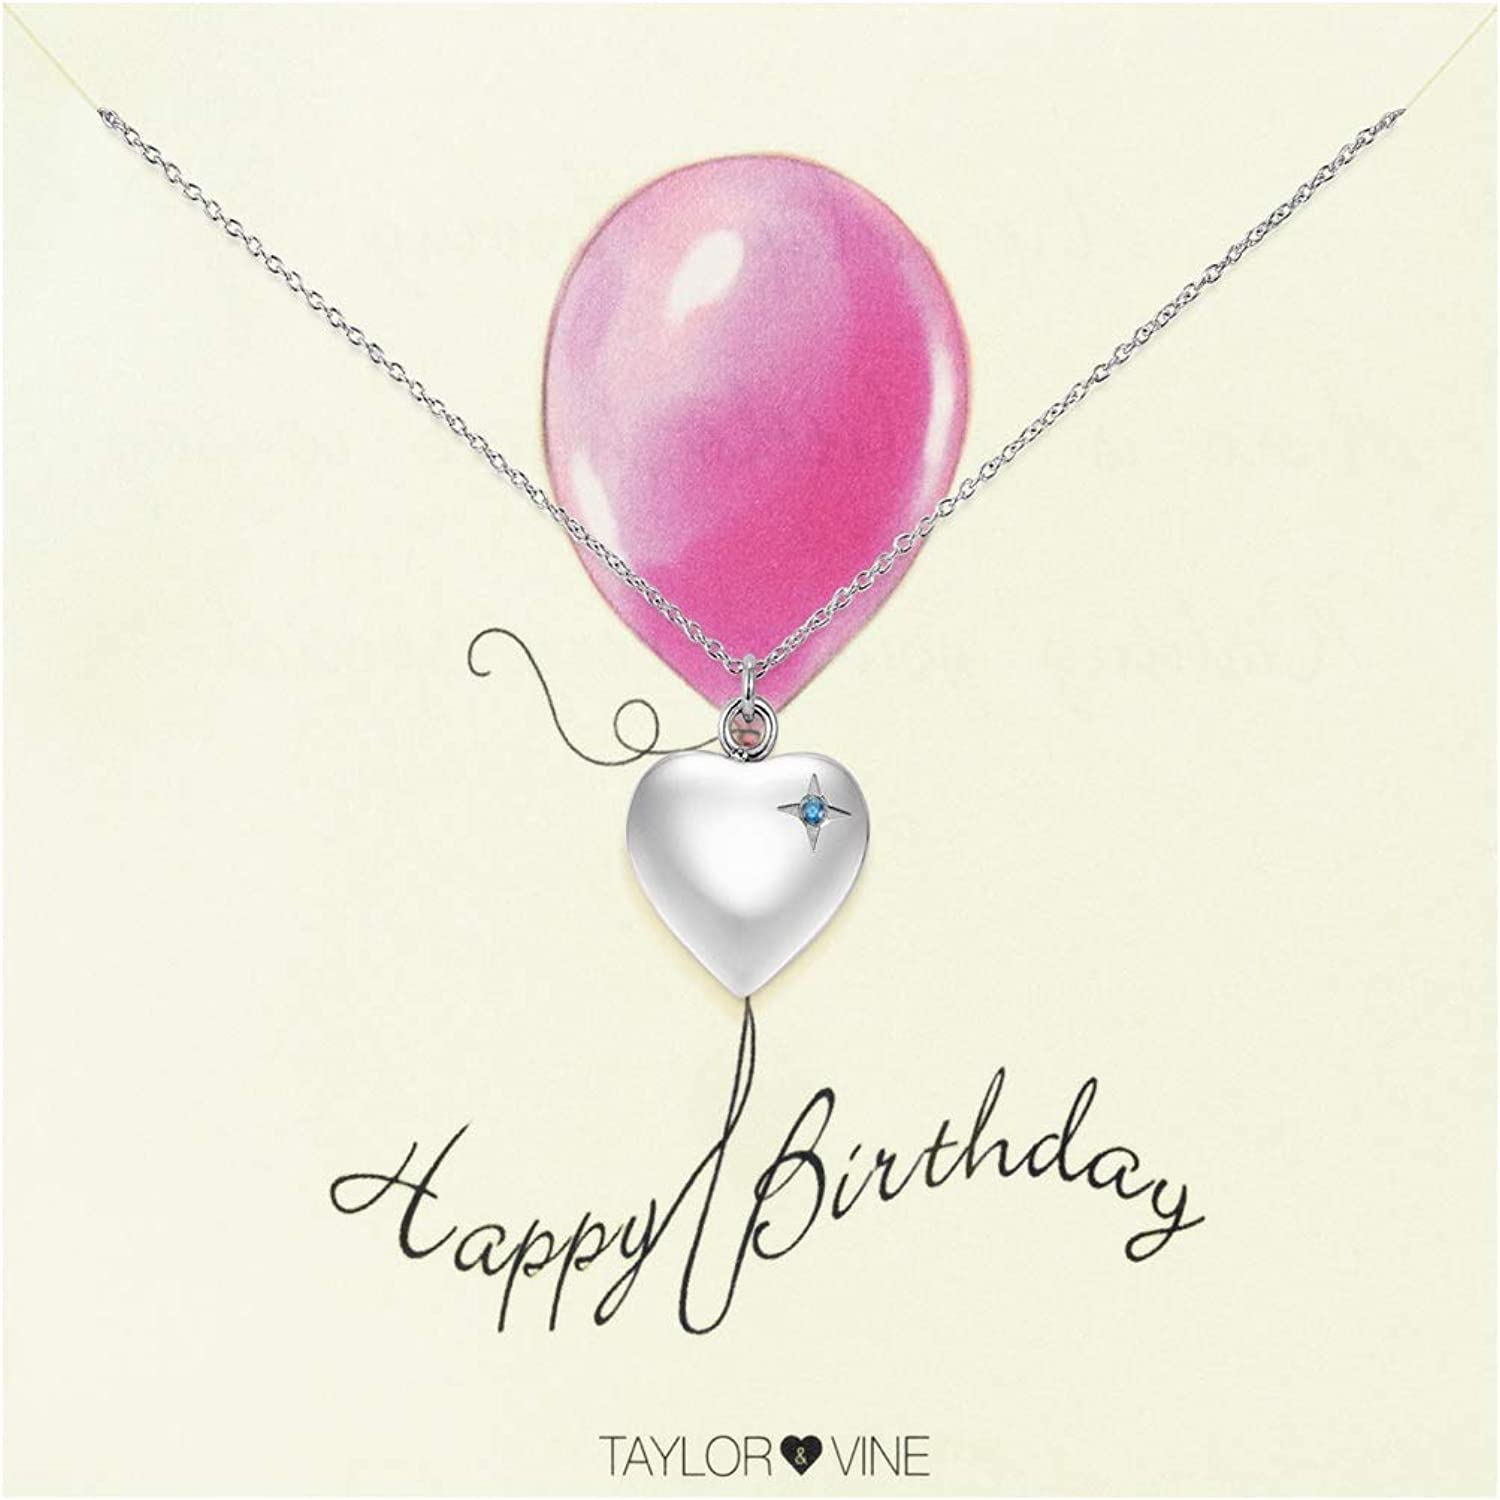 Happy Birthday Heart Pendant Necklace Engraved Happy Birthday Silver Tone with CZ by Taylor & Vine